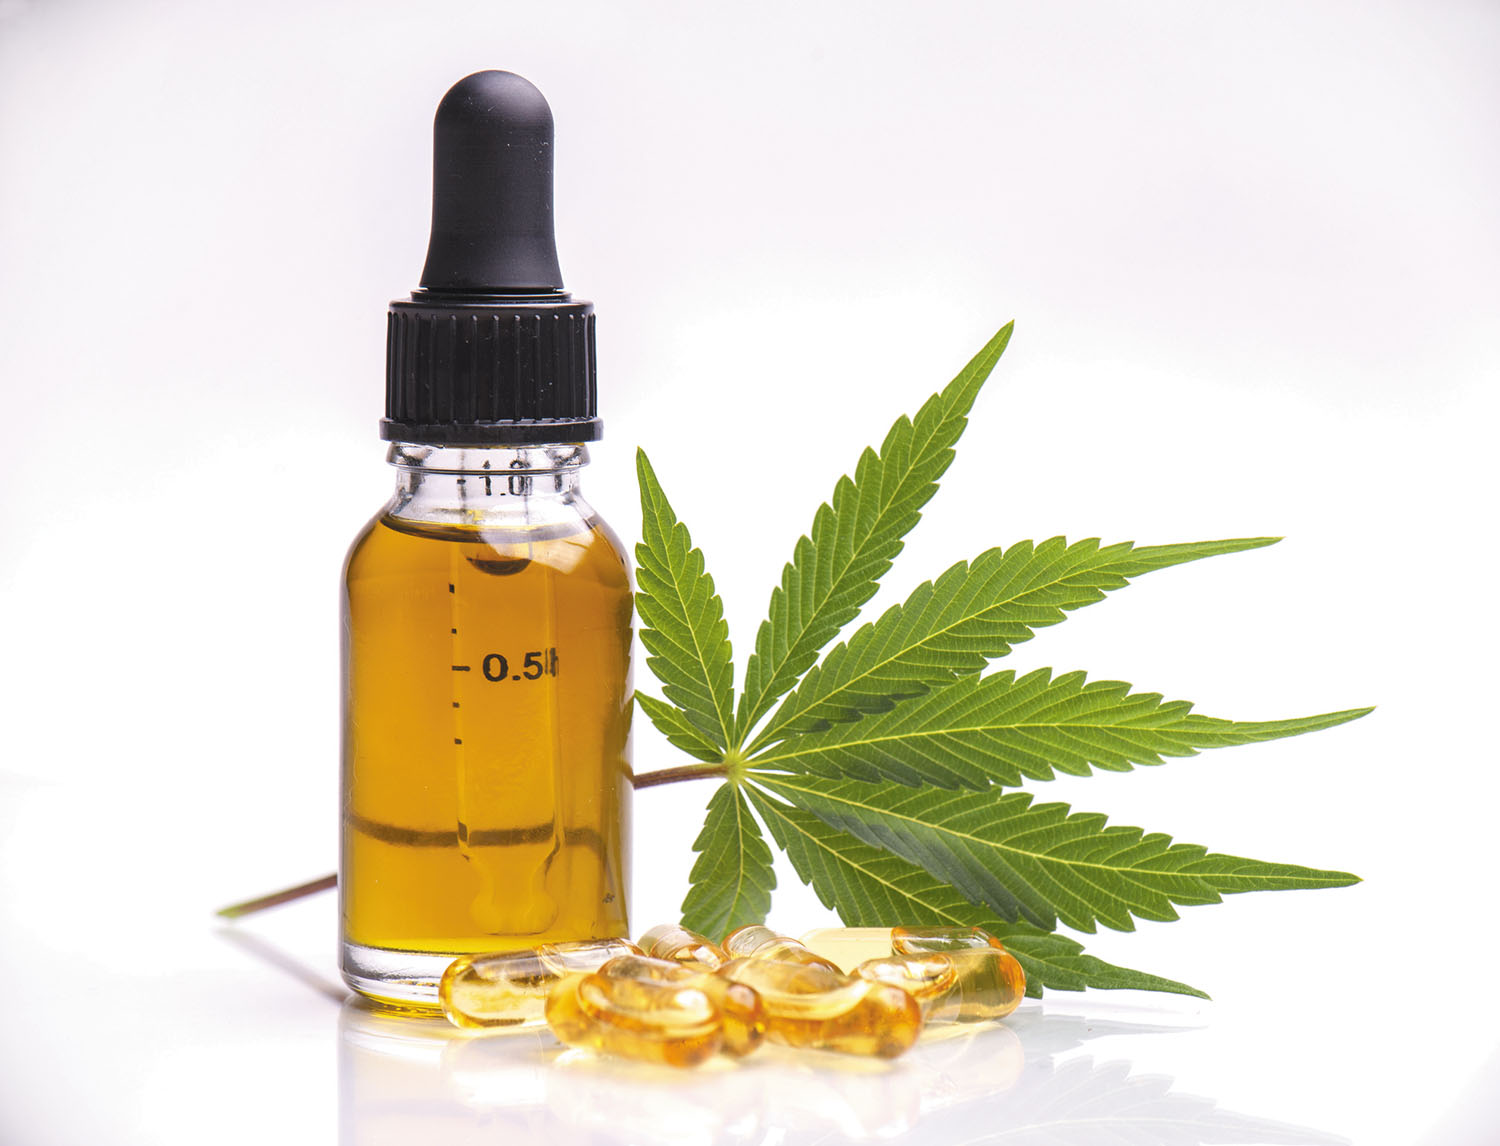 What Types of CBD Products are Available?